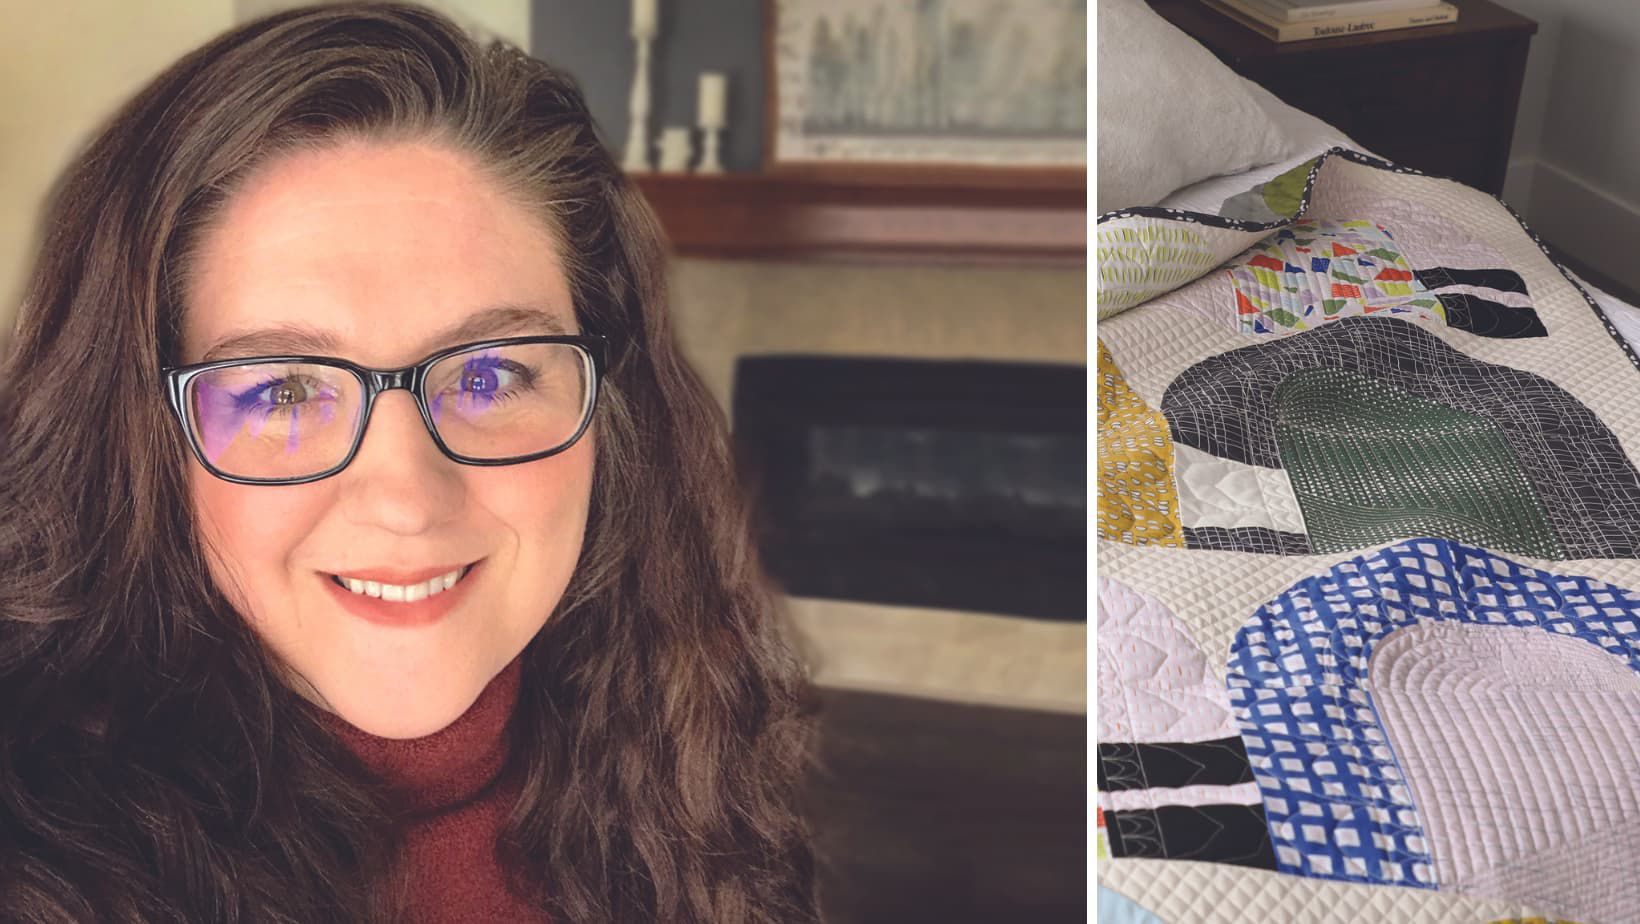 Quilt & Tell Podcast episode 57 featuring a headshot of Heather Black and her quilt Ingress Egress